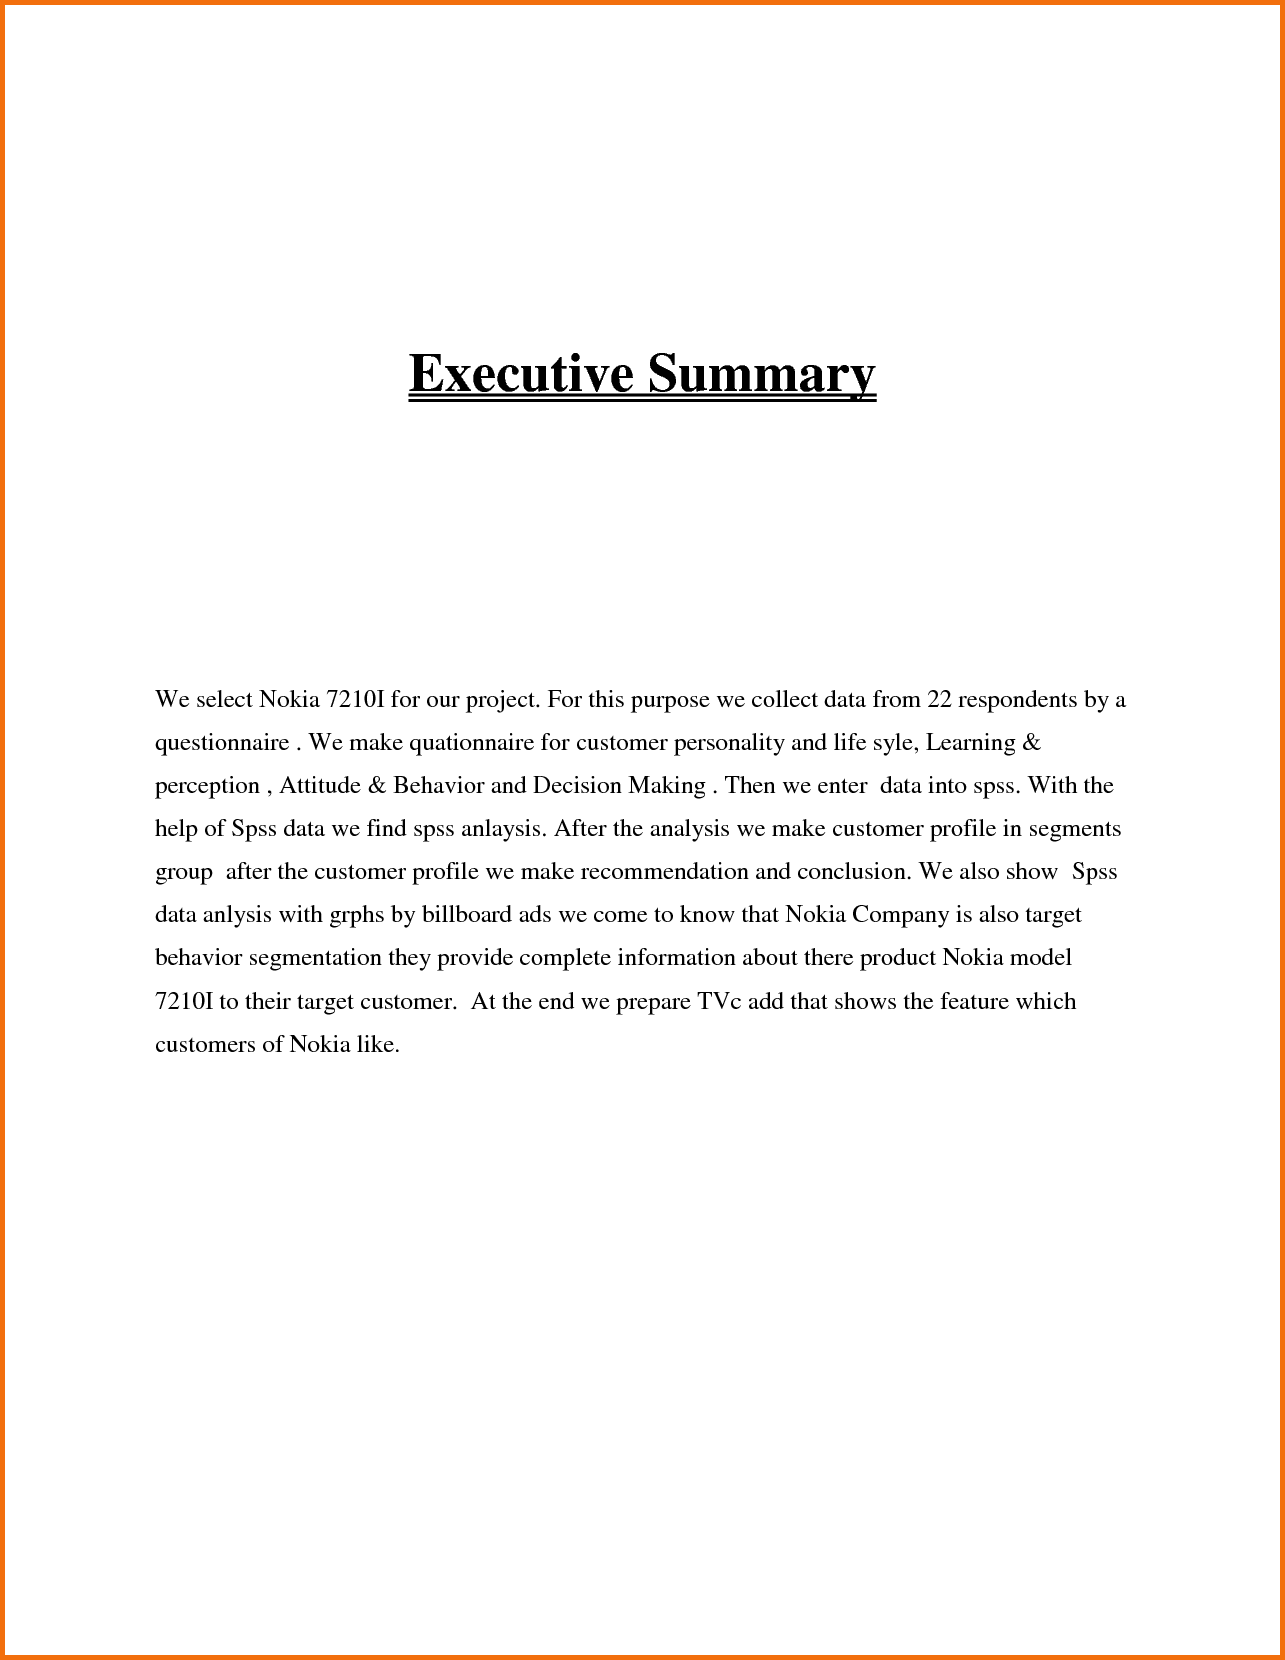 Executive Summary Sample  Executive Summary Templates